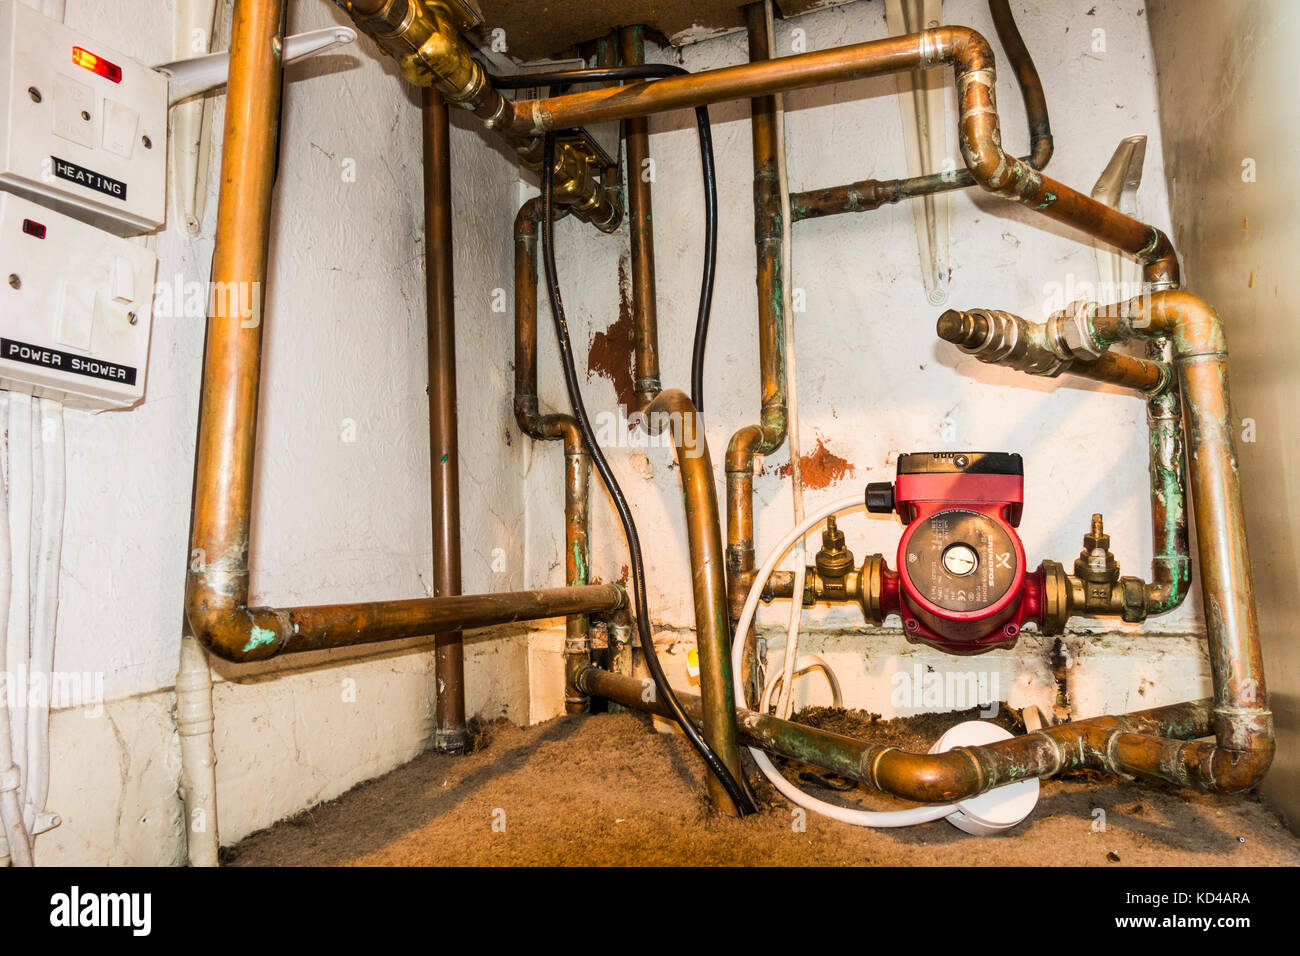 hight resolution of domestic installation of a central heating system with wide view of pump wiring and copper pipework inside a cupboard of a home in england uk